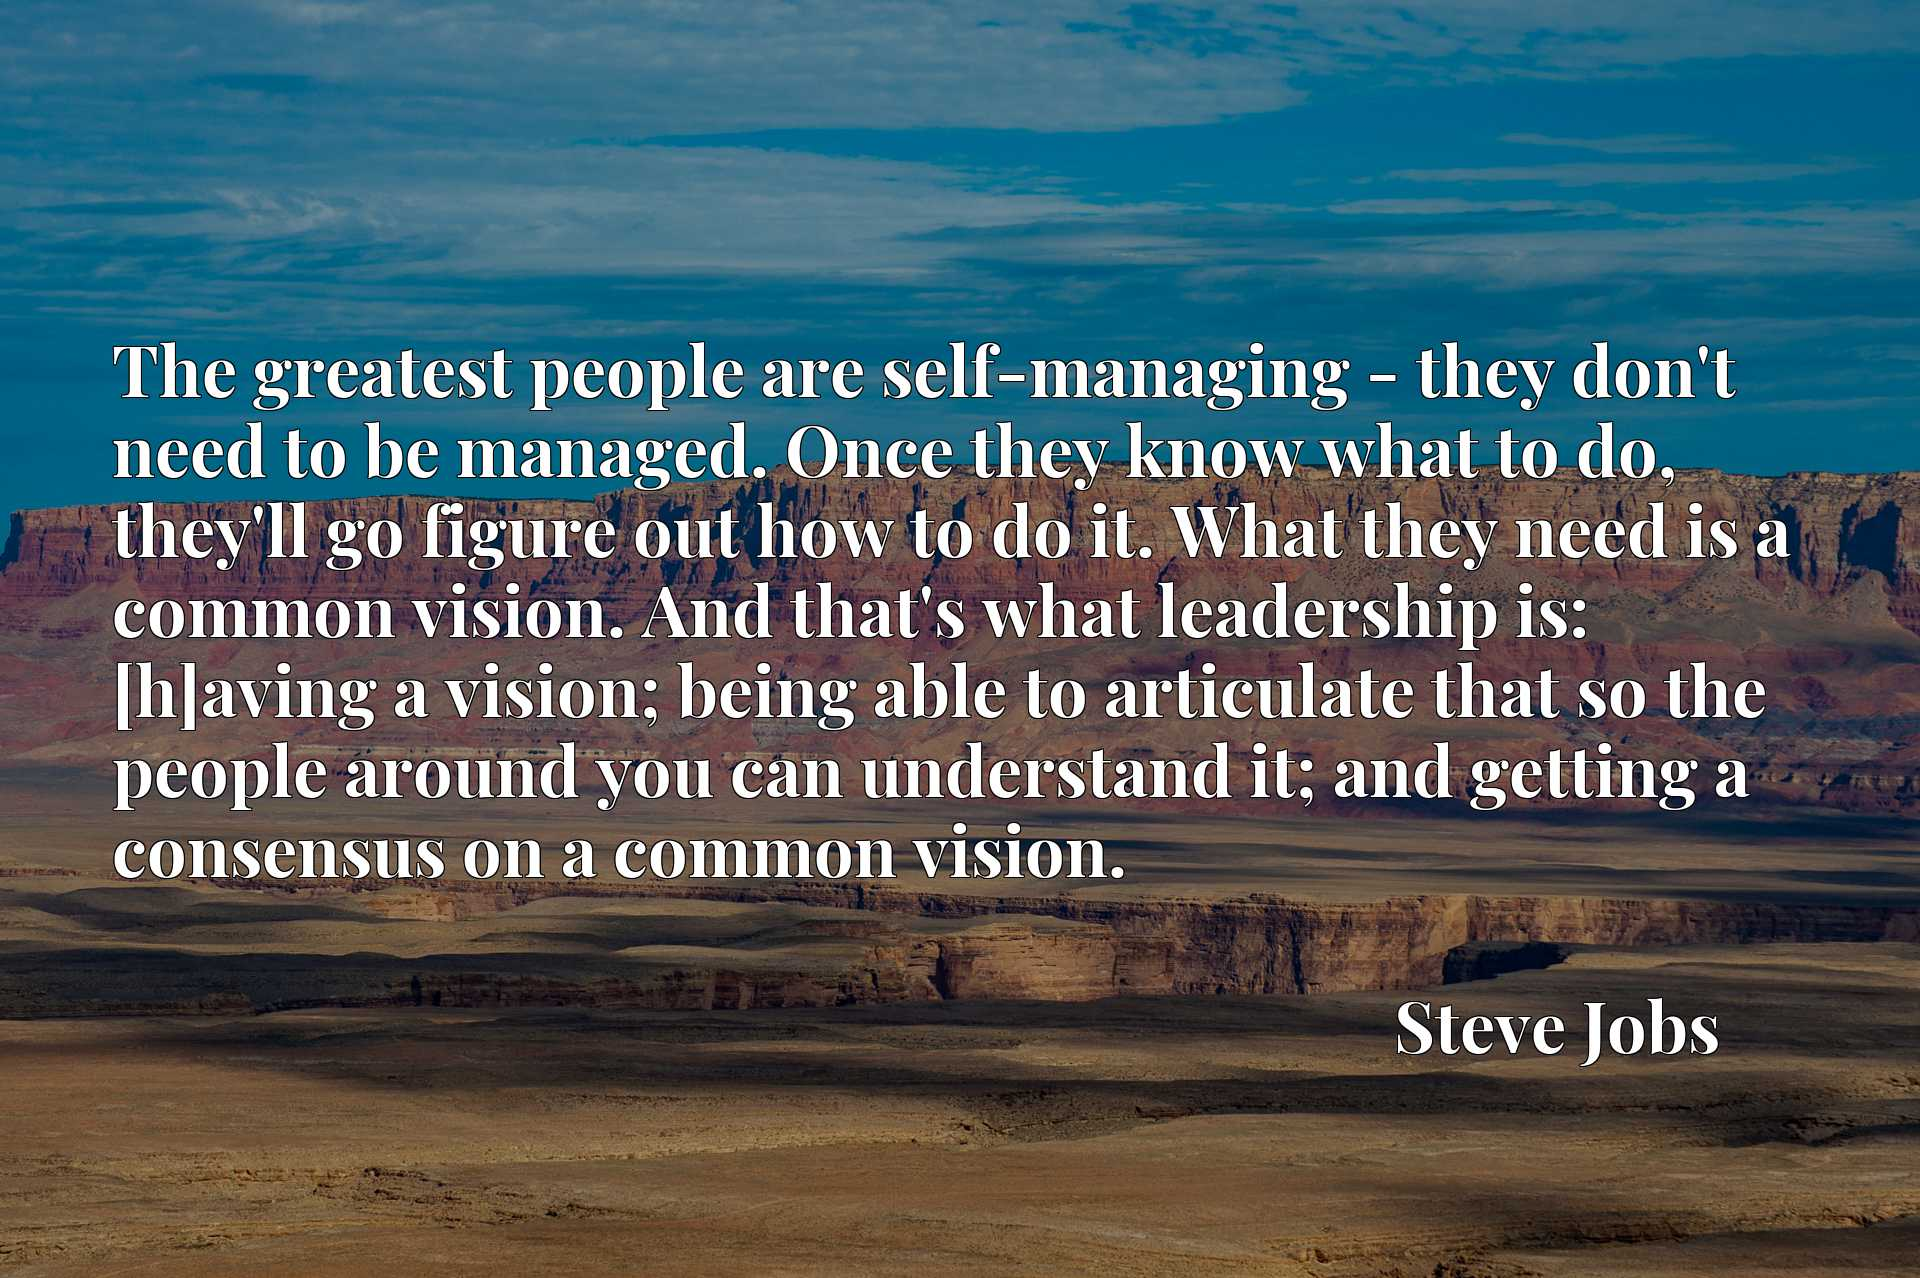 The greatest people are self-managing - they don't need to be managed. Once they know what to do, they'll go figure out how to do it. What they need is a common vision. And that's what leadership is: [h]aving a vision; being able to articulate that so the people around you can understand it; and getting a consensus on a common vision.